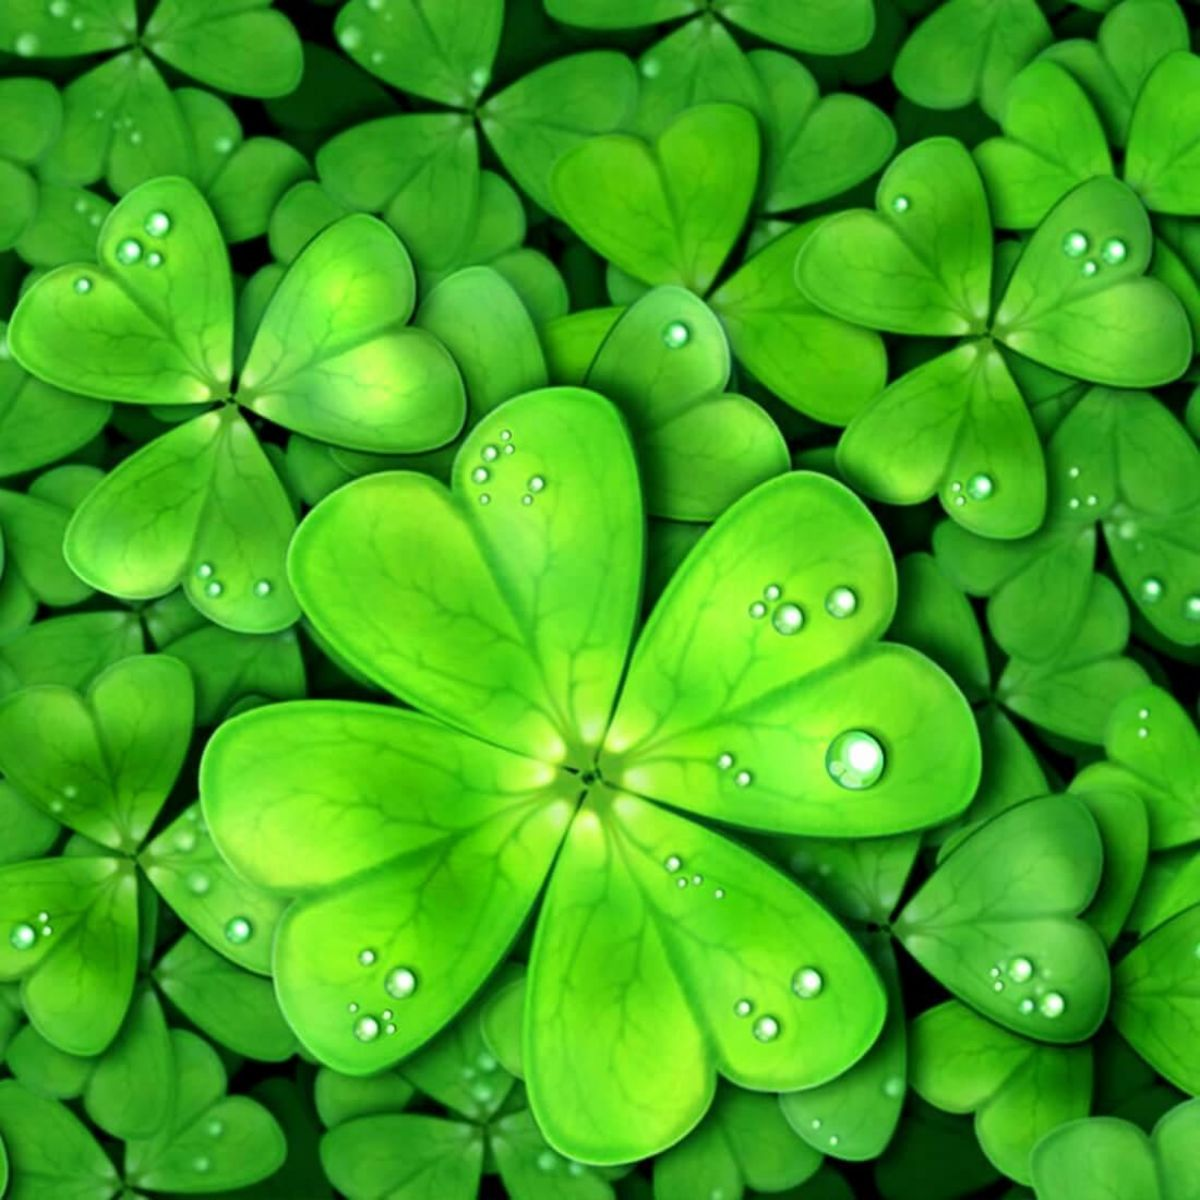 Fun fact: I found not one, but two four leaf clover 4 years ago and they did bring me luck!